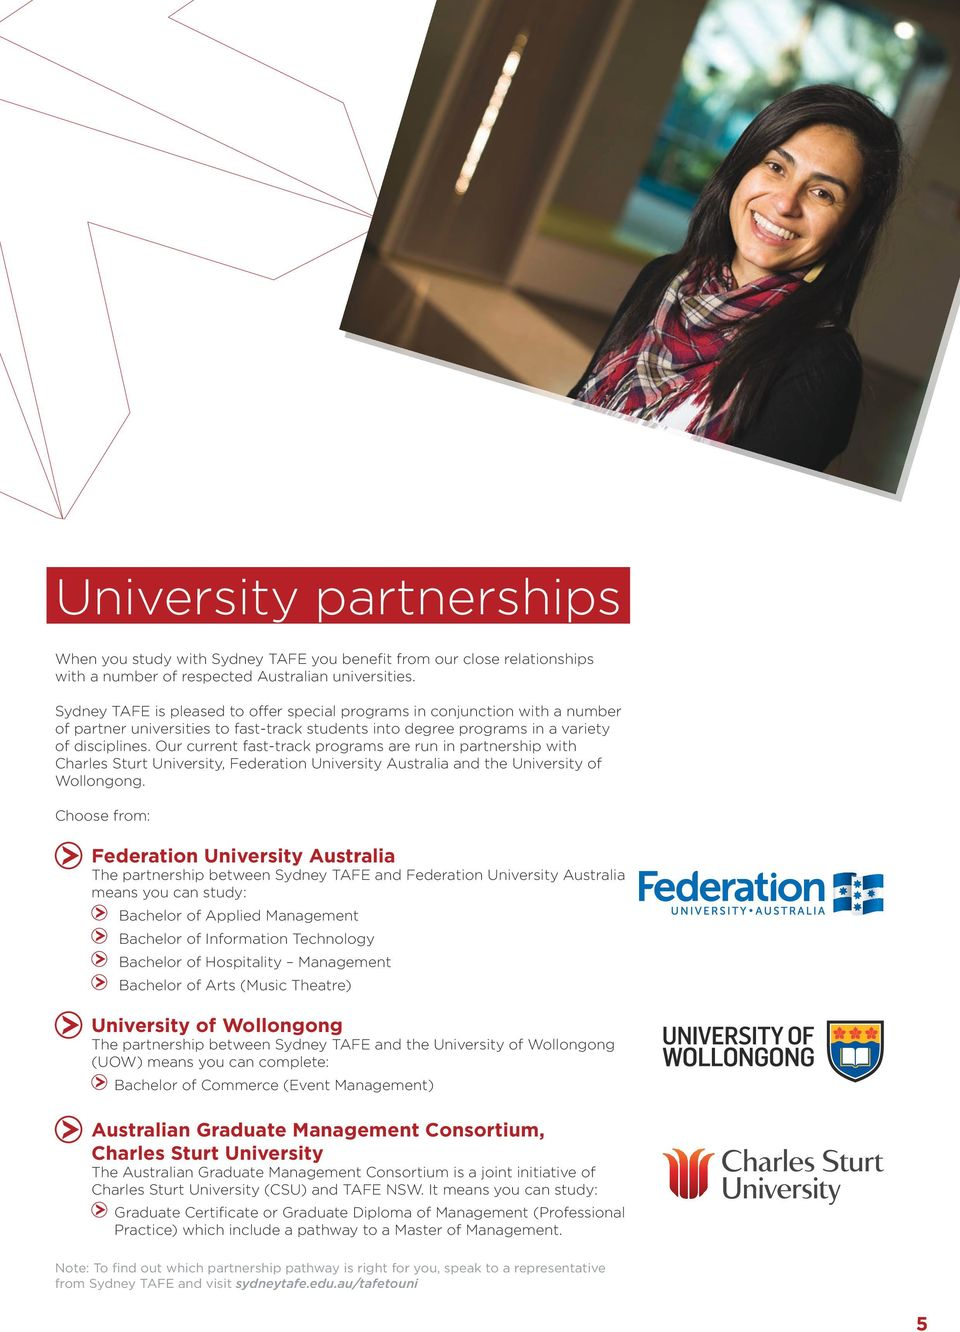 Our current fast-track programs are run in partnership with Charles Sturt University, Federation University Australia and the University of Wollongong.